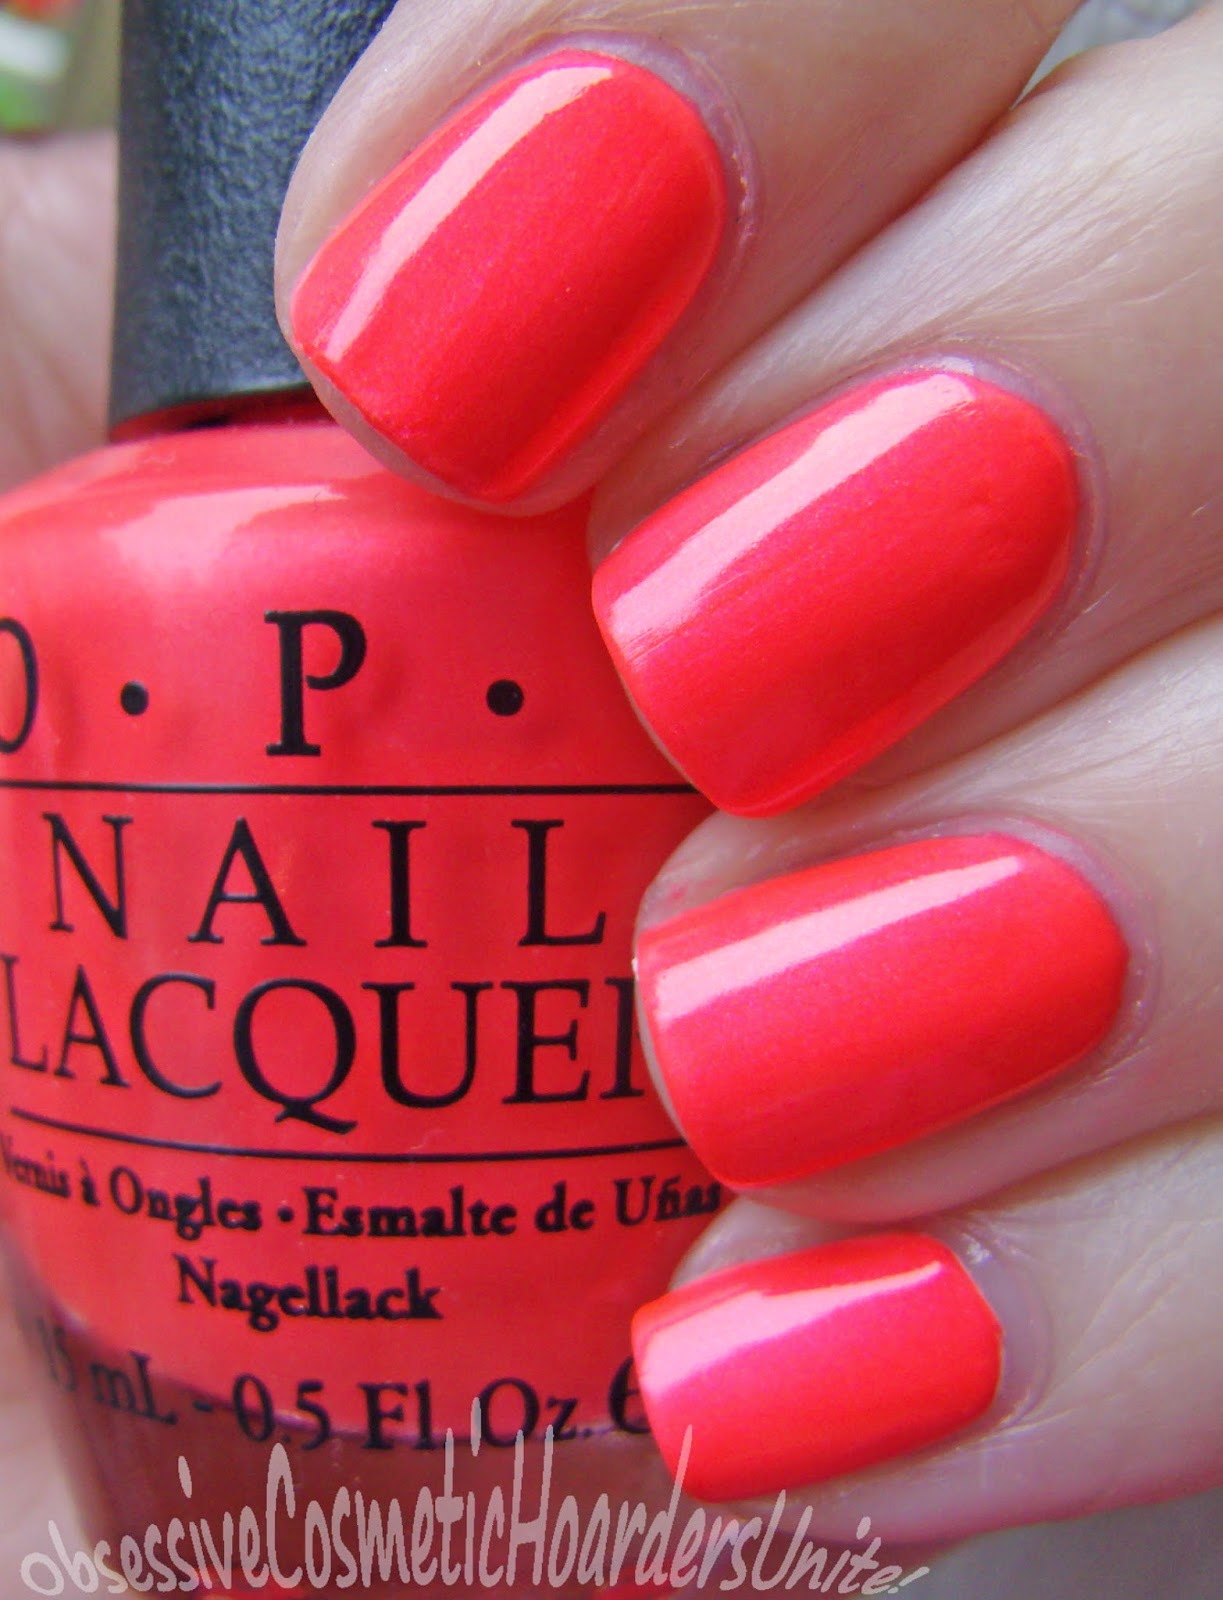 Obsessive Cosmetic Hoarders Unite!: NEW! OPI Neons For Summer (Nail ...